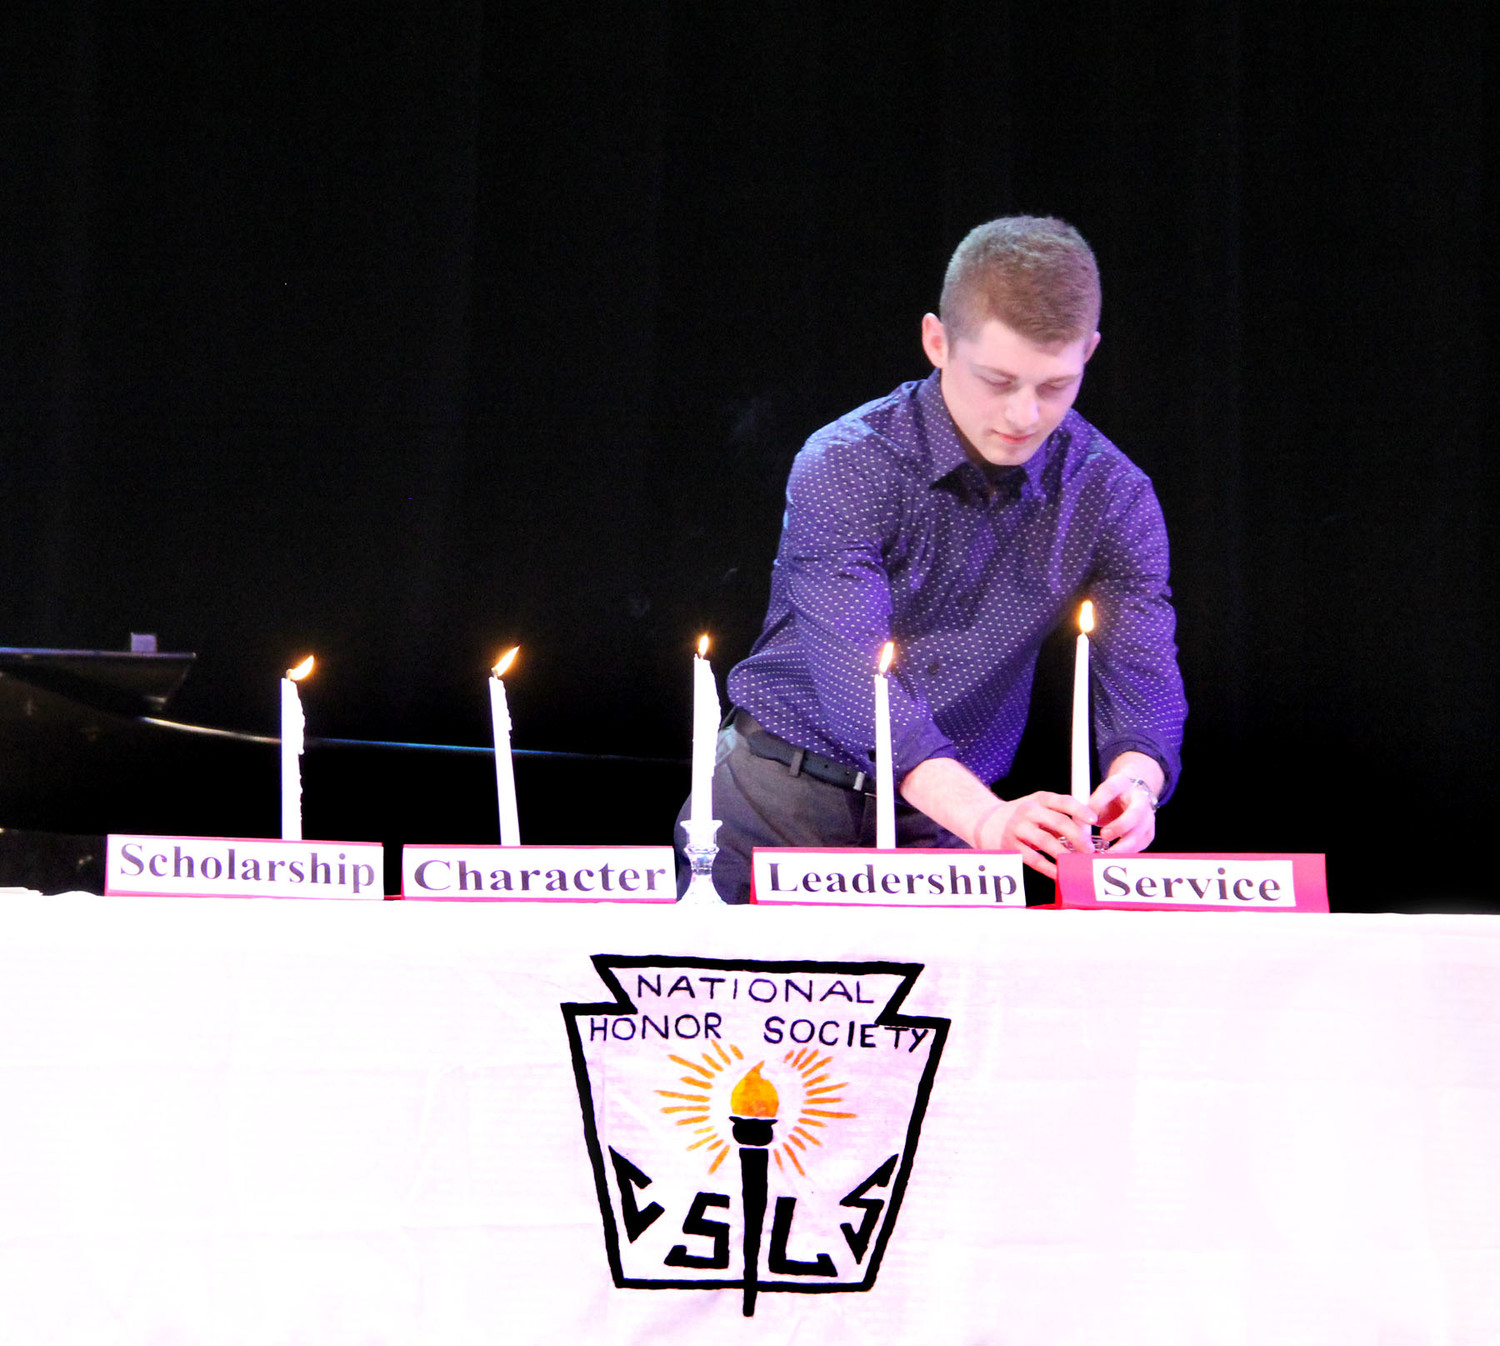 Caleb McCabe lights the service candle.